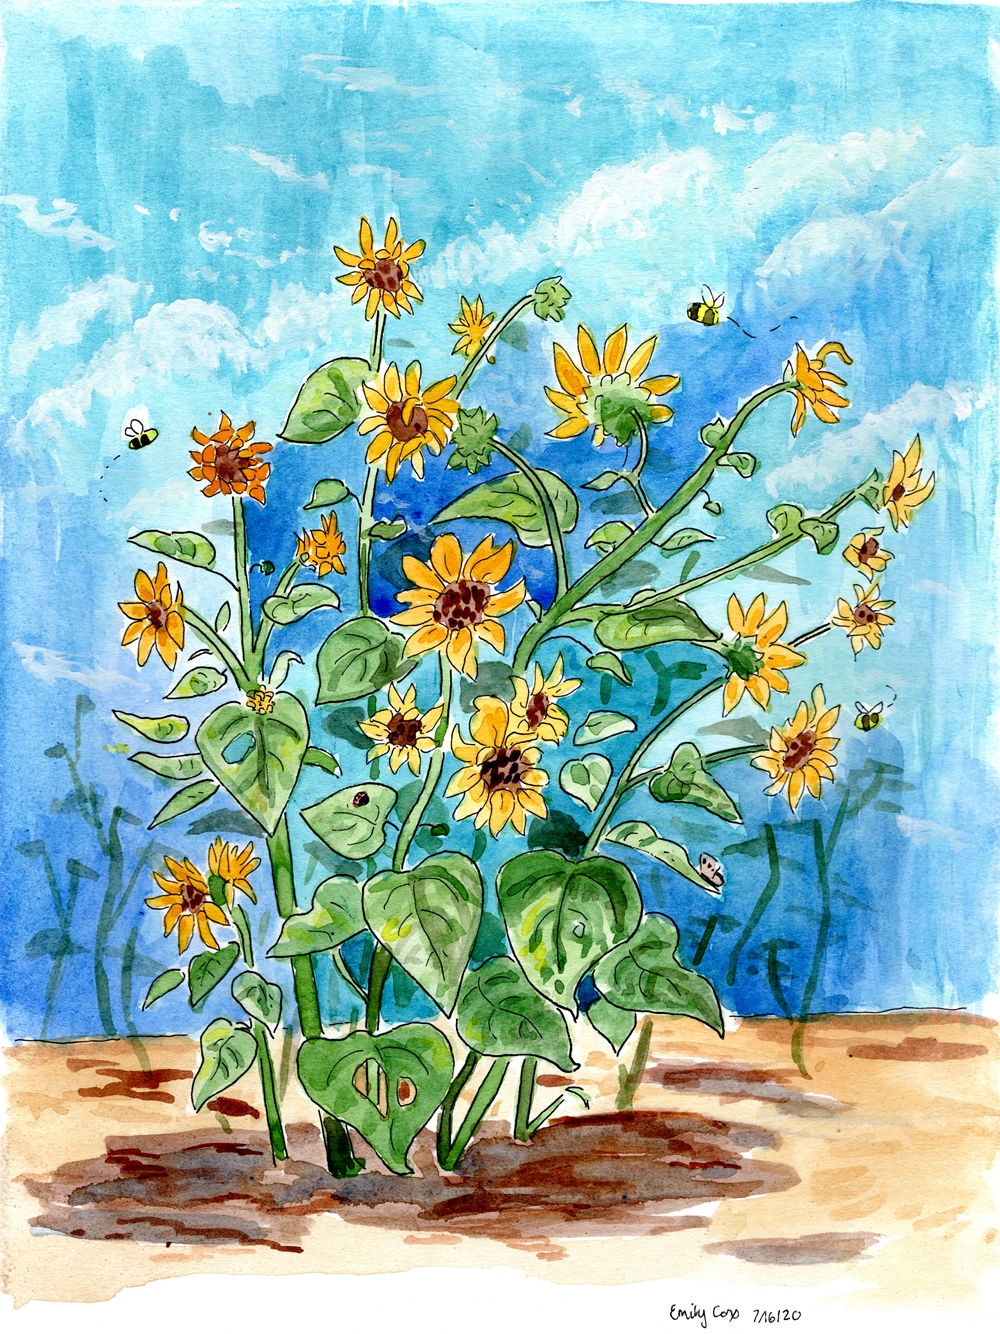 a sunflower plant against a blue sky, in a watercolor painting.